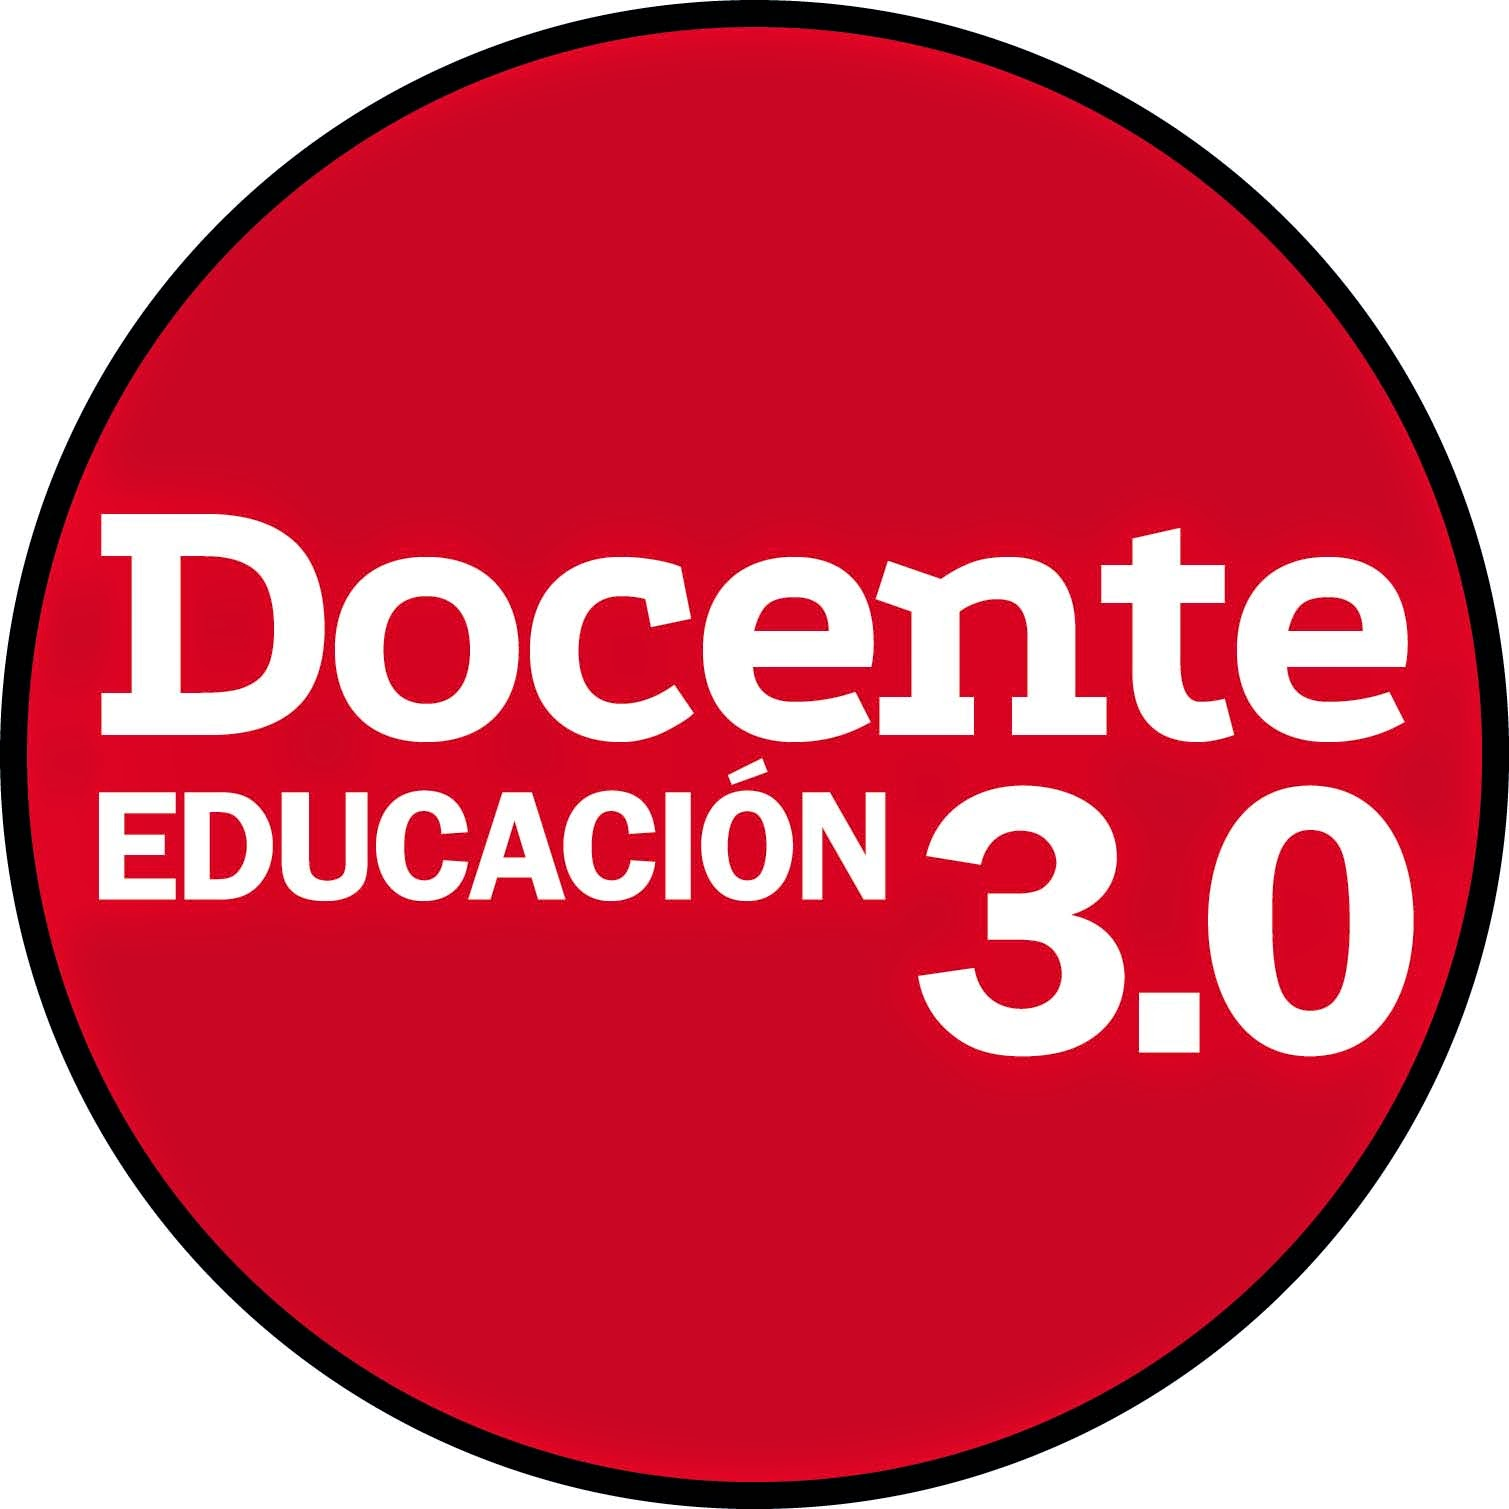 Docente 3.0